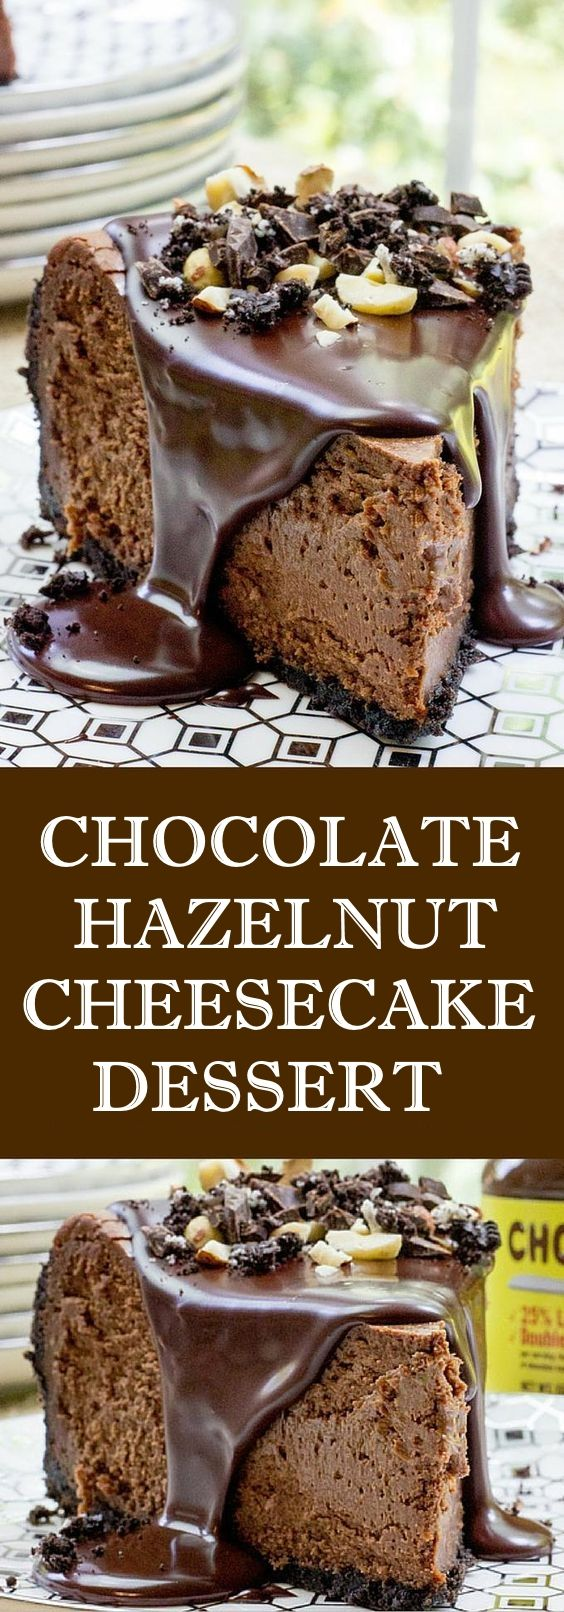 Chocolate Hazelnut Cheesecake Dessert http://healthyquickly.com/55-healthy-recipes-salads-haters/